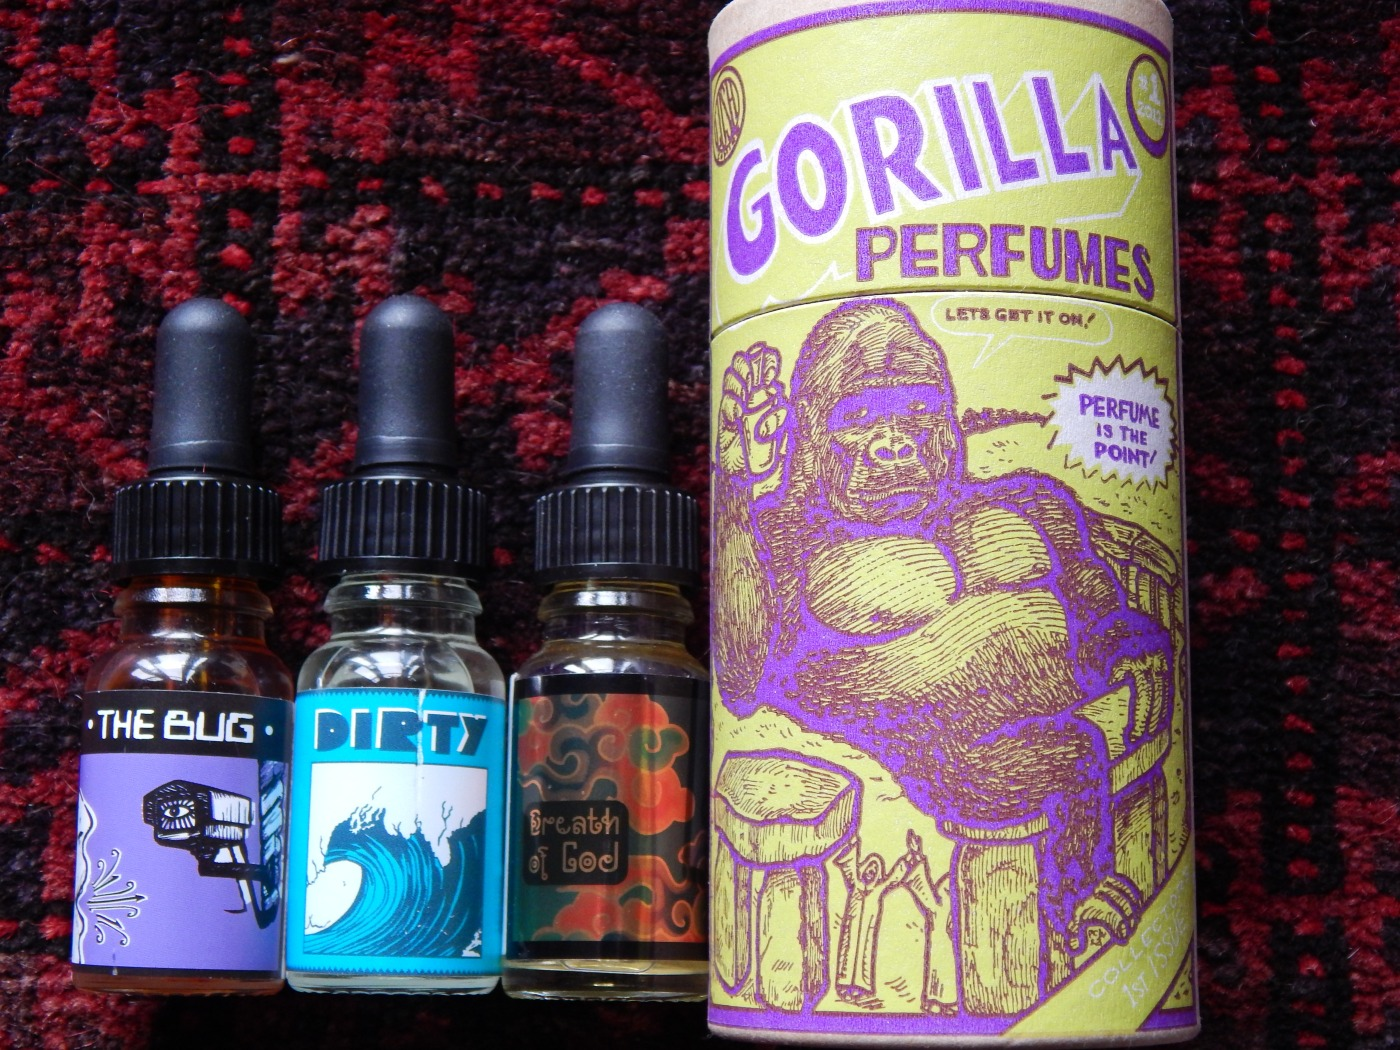 Perfumes by Gorilla